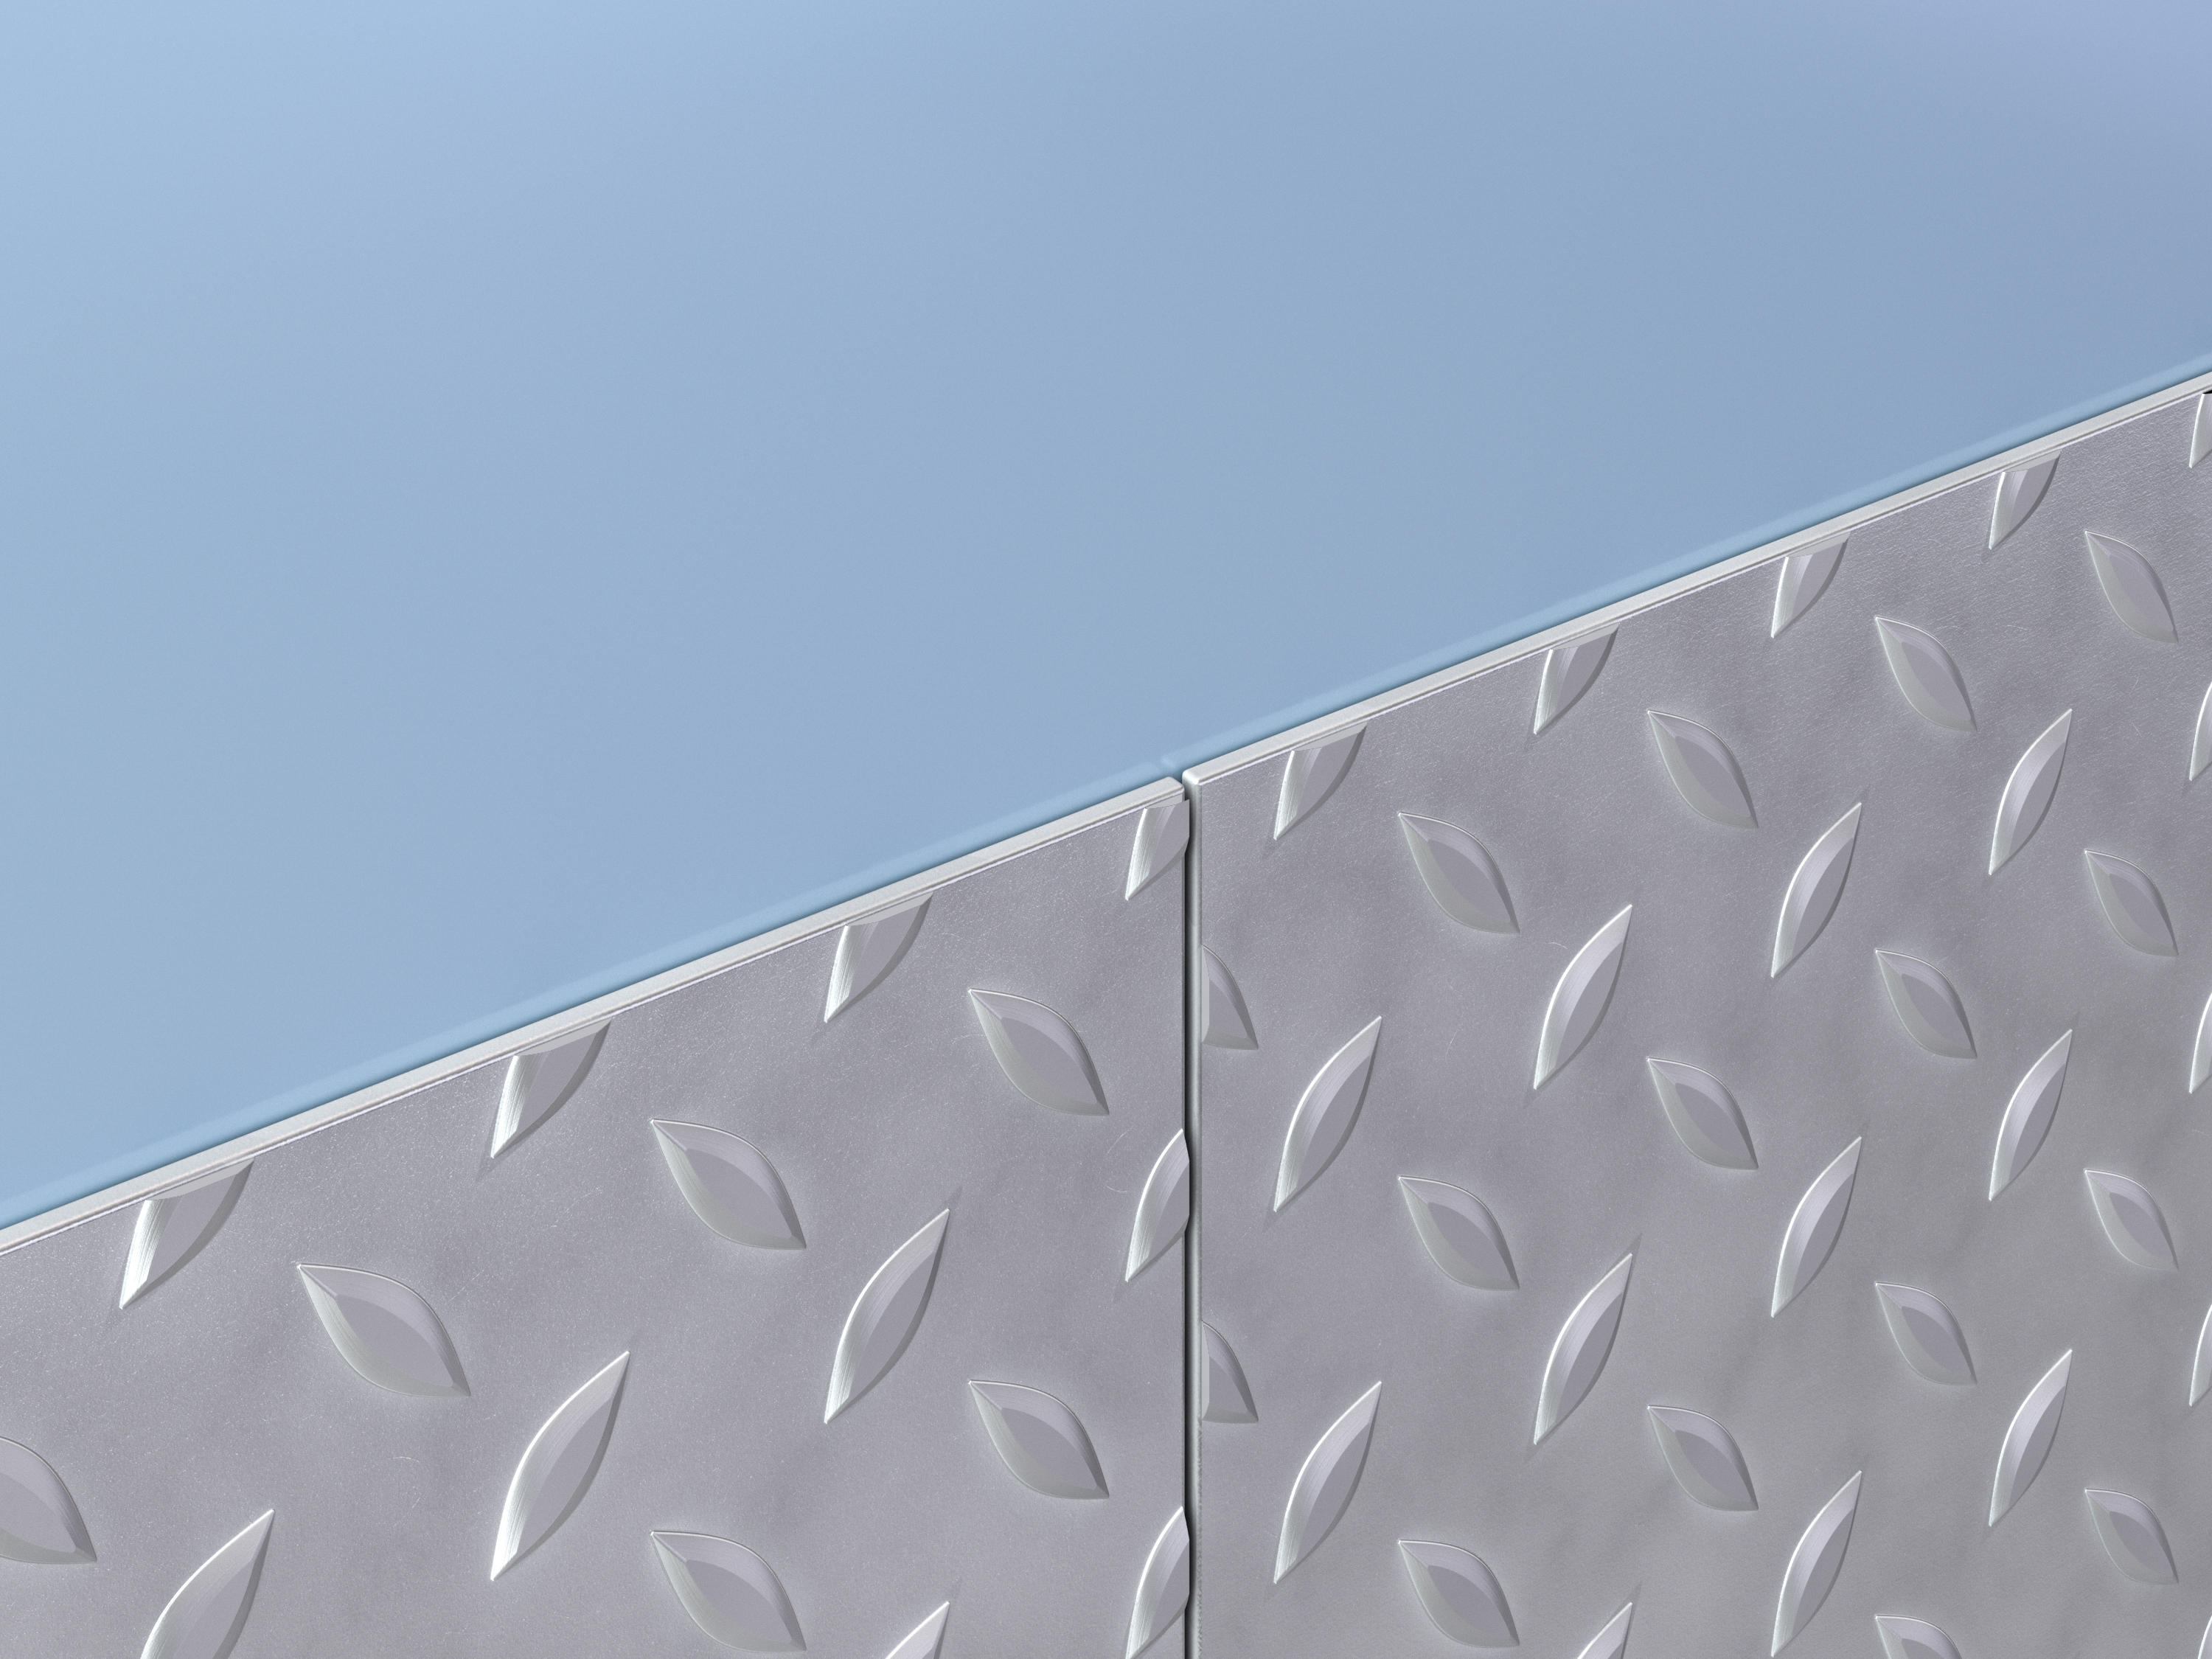 Stainless Steel Diamond Plate Wall Coverings